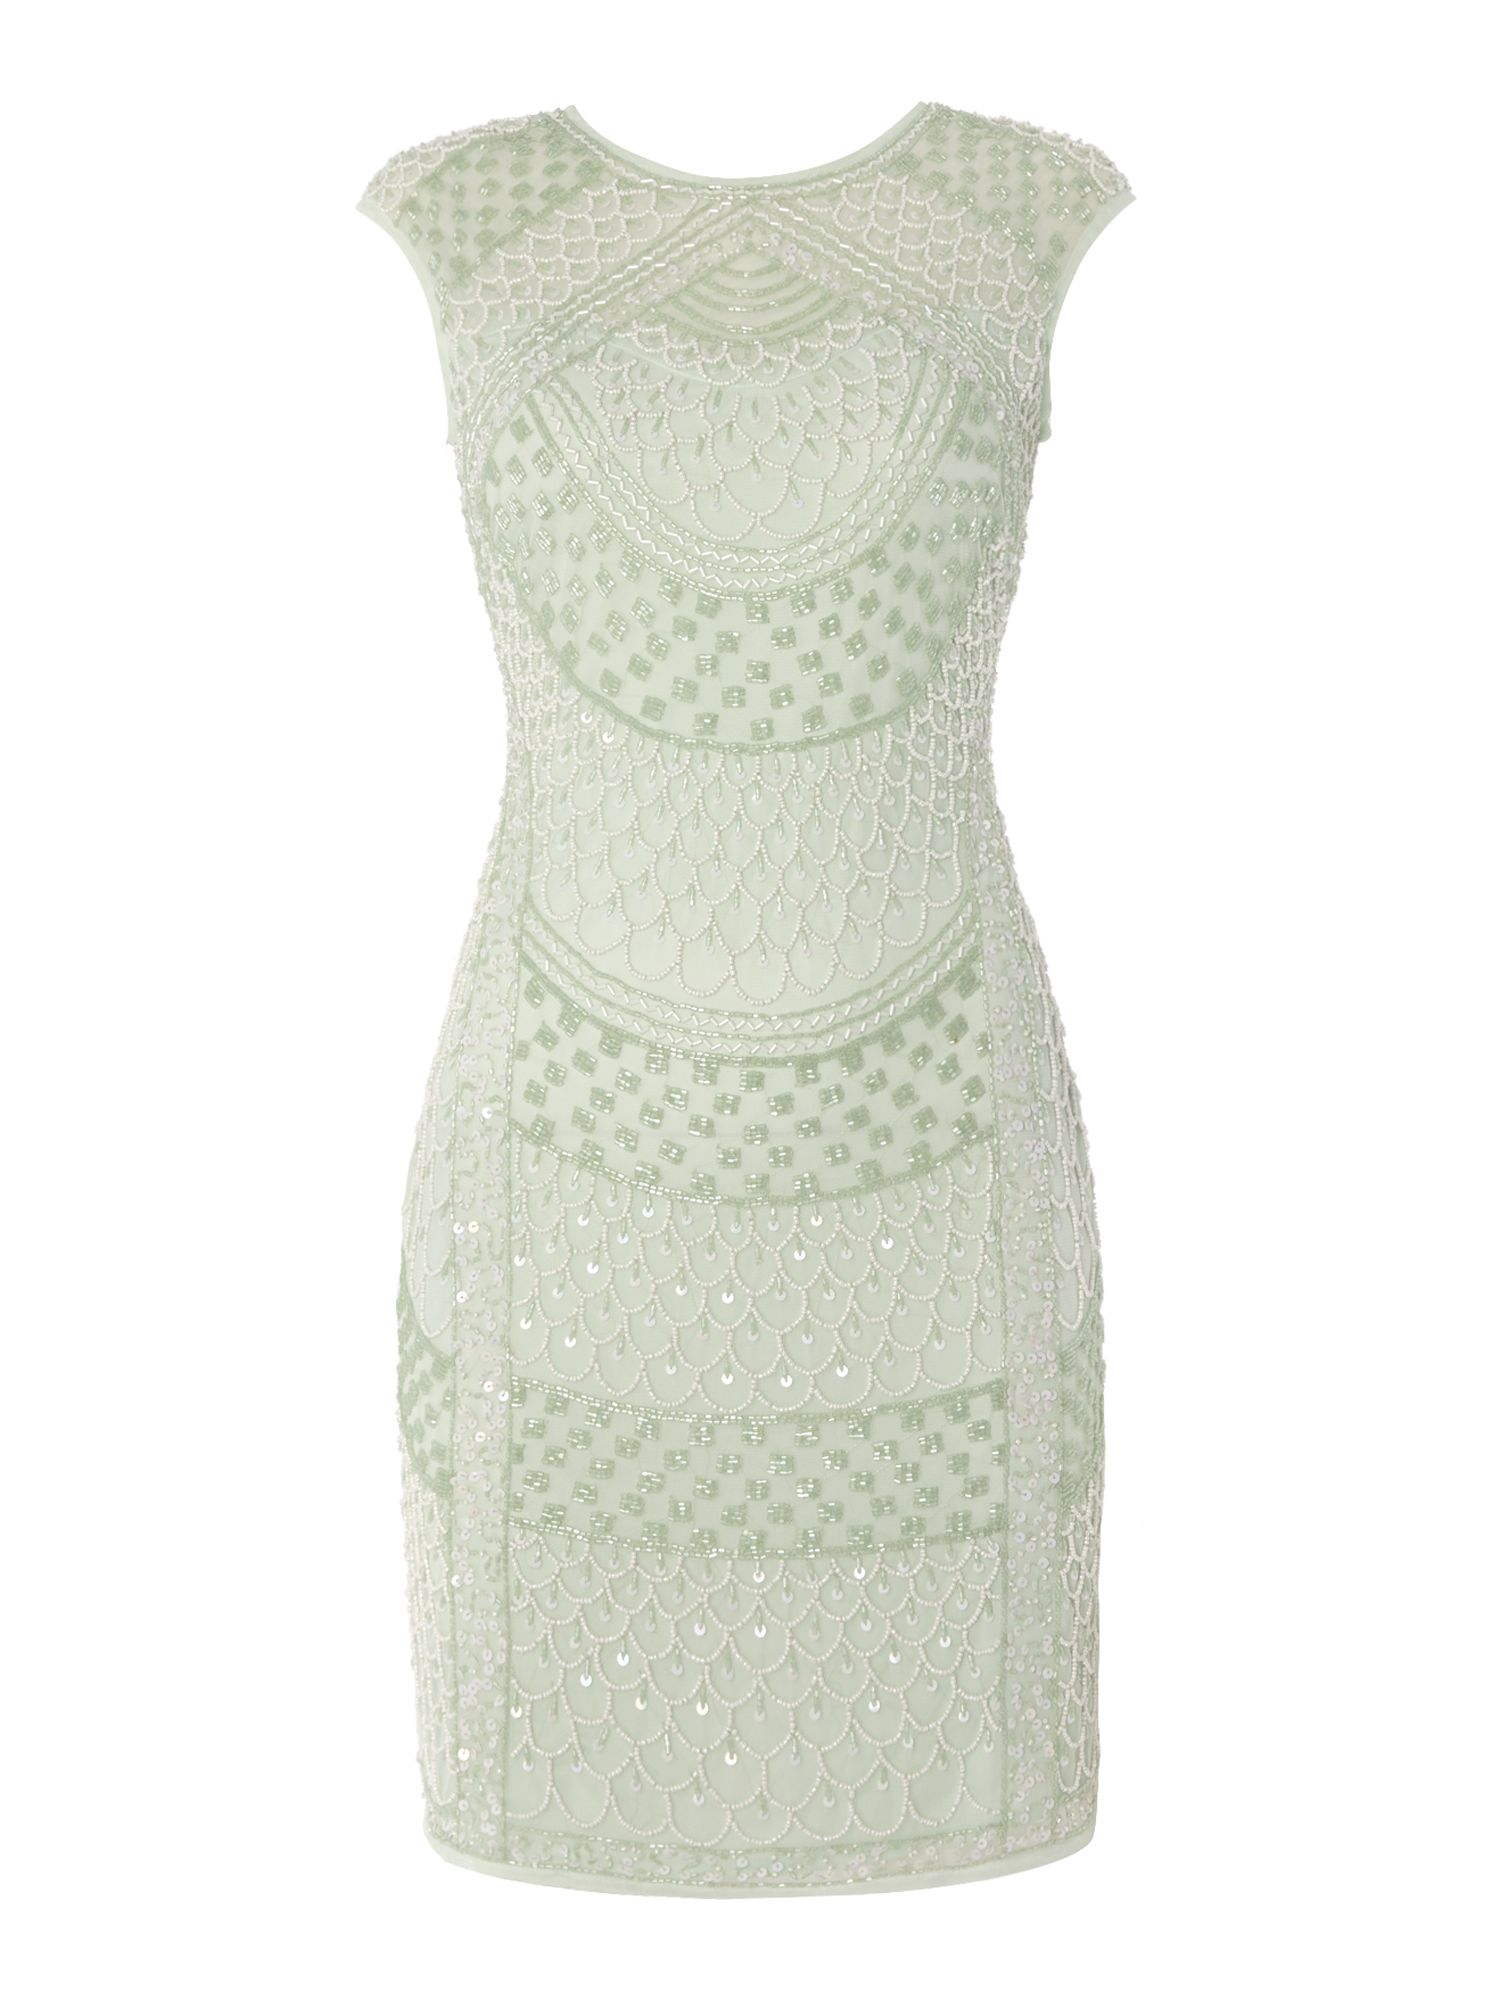 Lace and Beads Lace and Beads Cap Sleeve Embellished Bodycon Dress, Mint